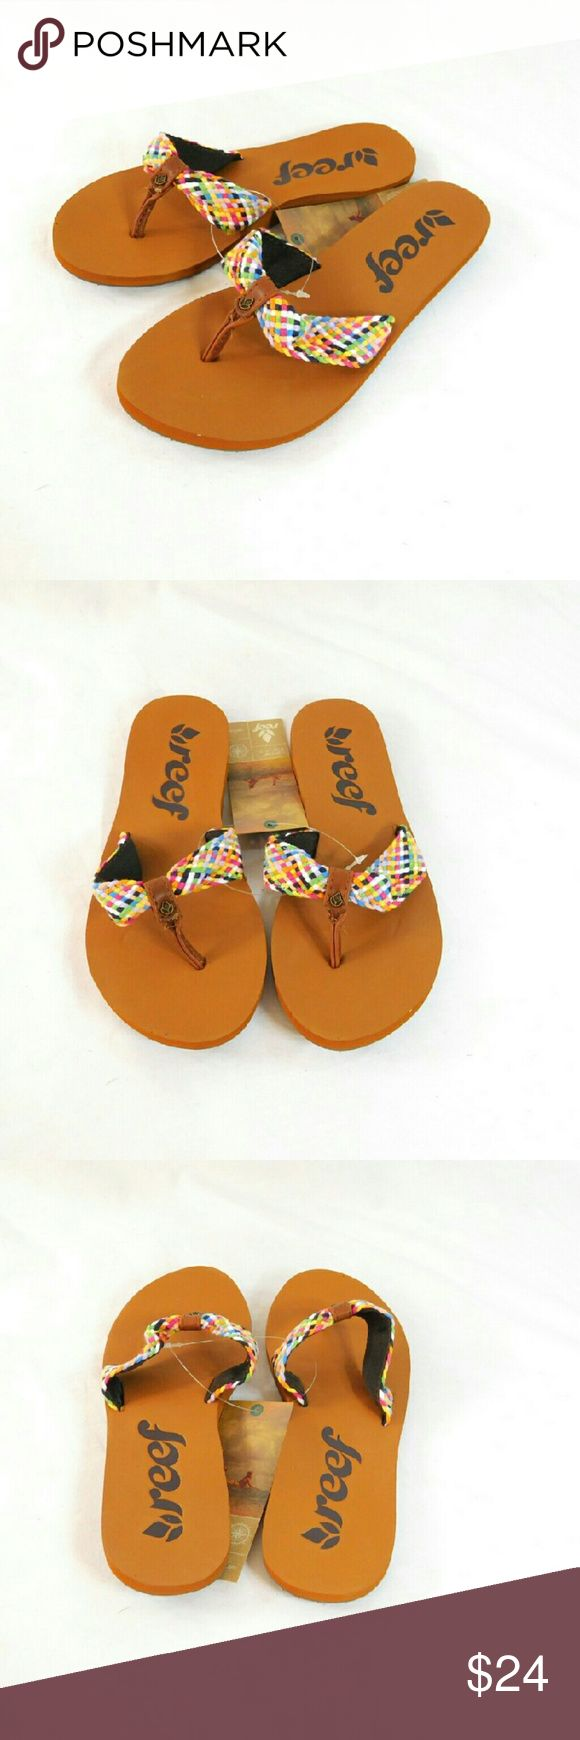 REEF Mallory Scrunch Multi Color Flip Flops Thanks for checking out my closet. I take all my own pics. The flip flops are authentic and new with tags. REEF Shoes Sandals